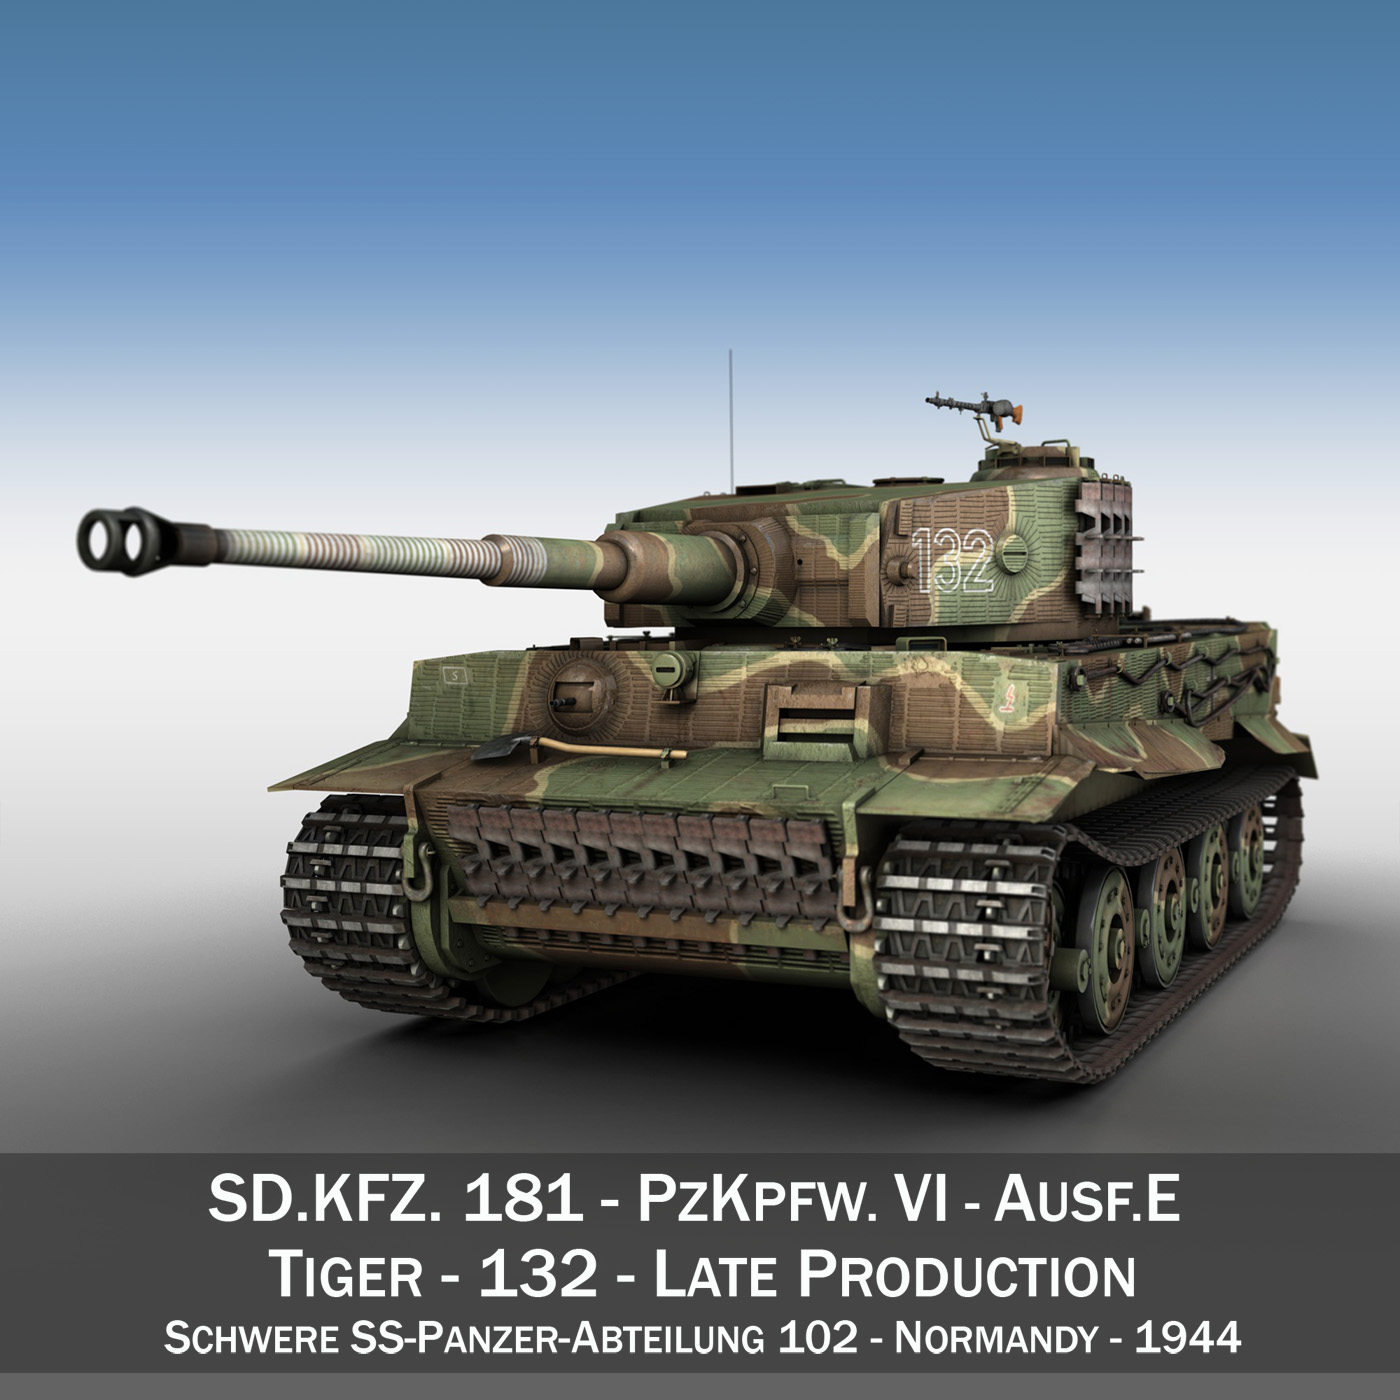 Panzer VI - Tiger - 132 - Late Production 3d model 3ds fbx c4d lwo lws lw obj 292965